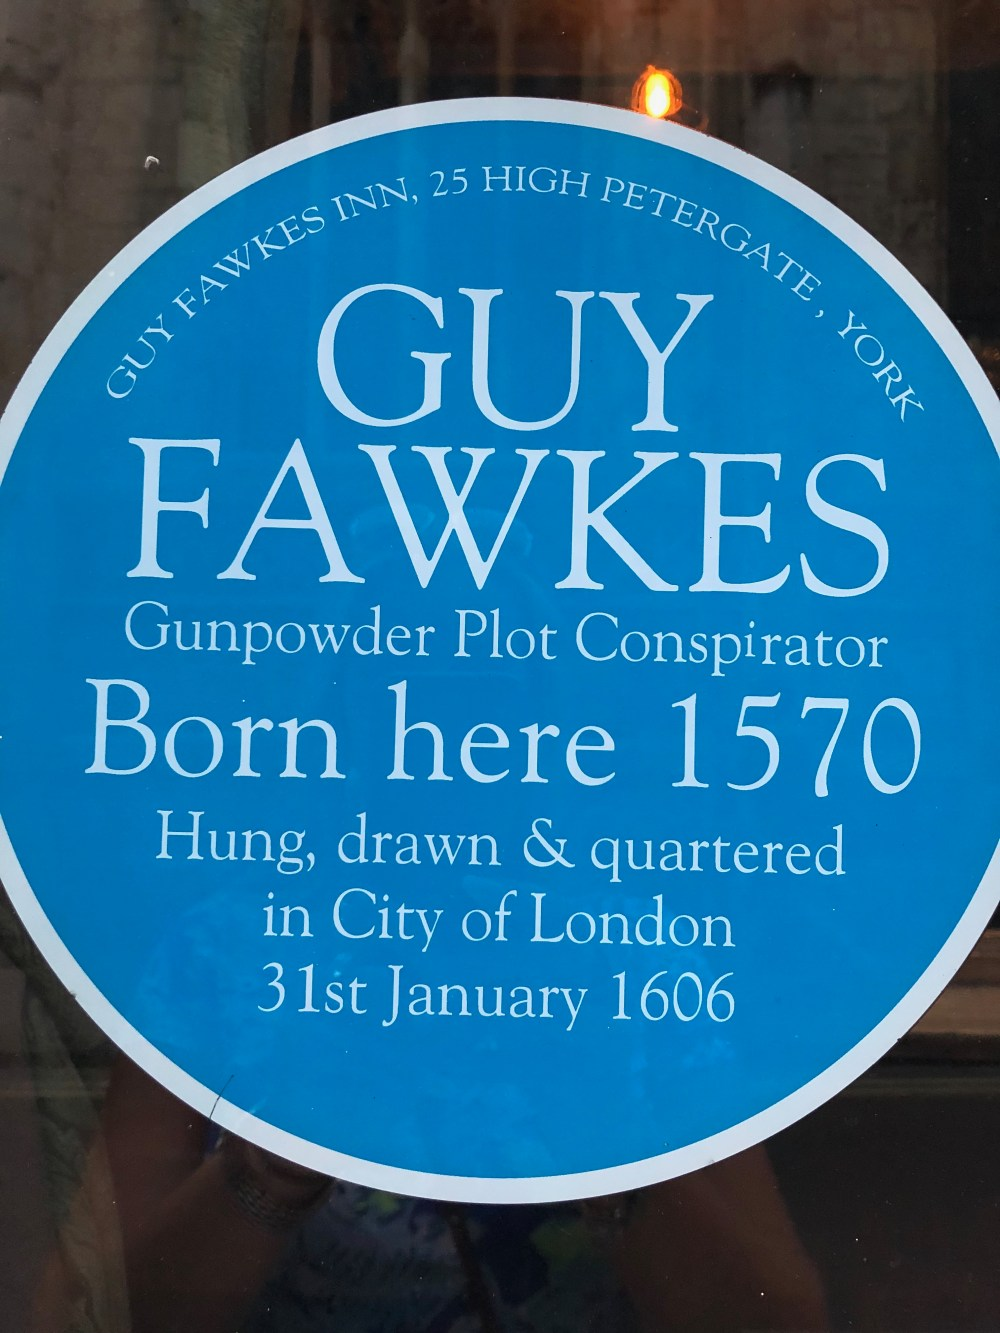 Guy Fawkes historical figures